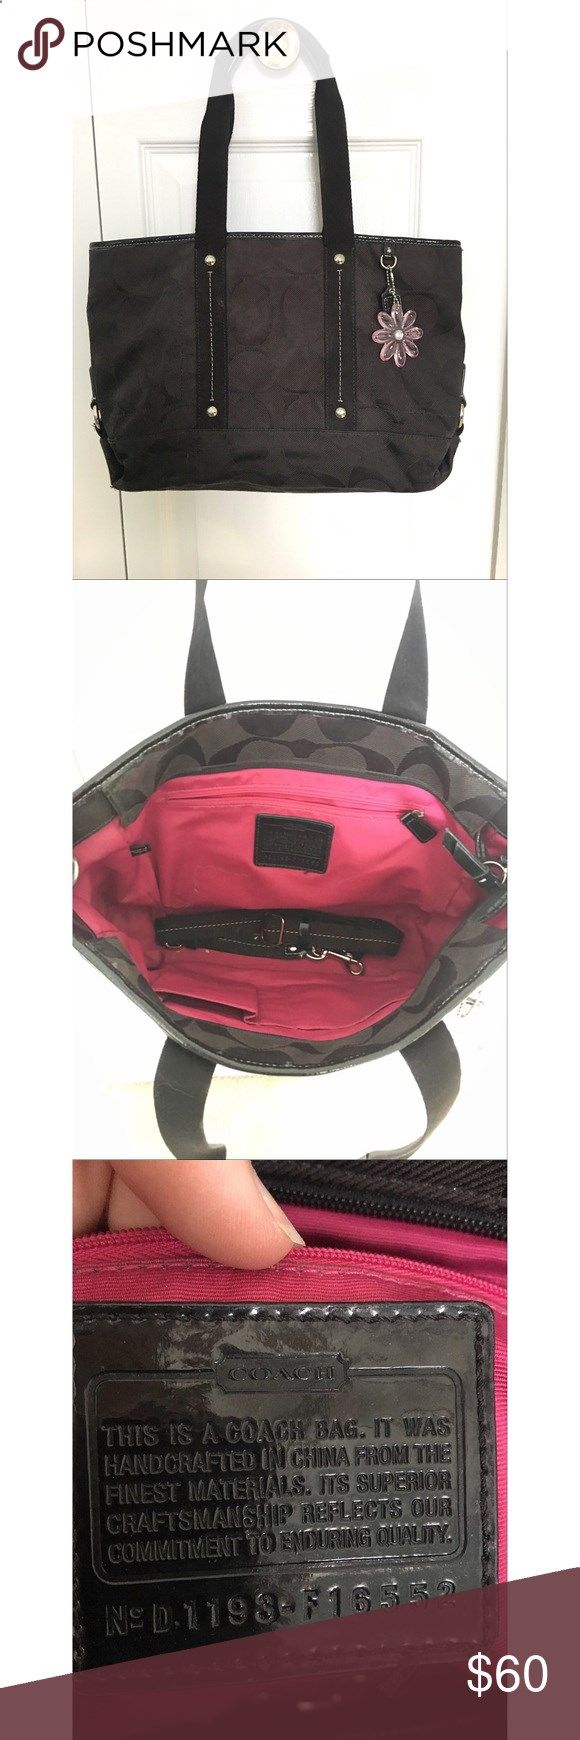 Black coach purse Black coach purse, pink lining inside, gently used,smoke free home Coach Bags Totes